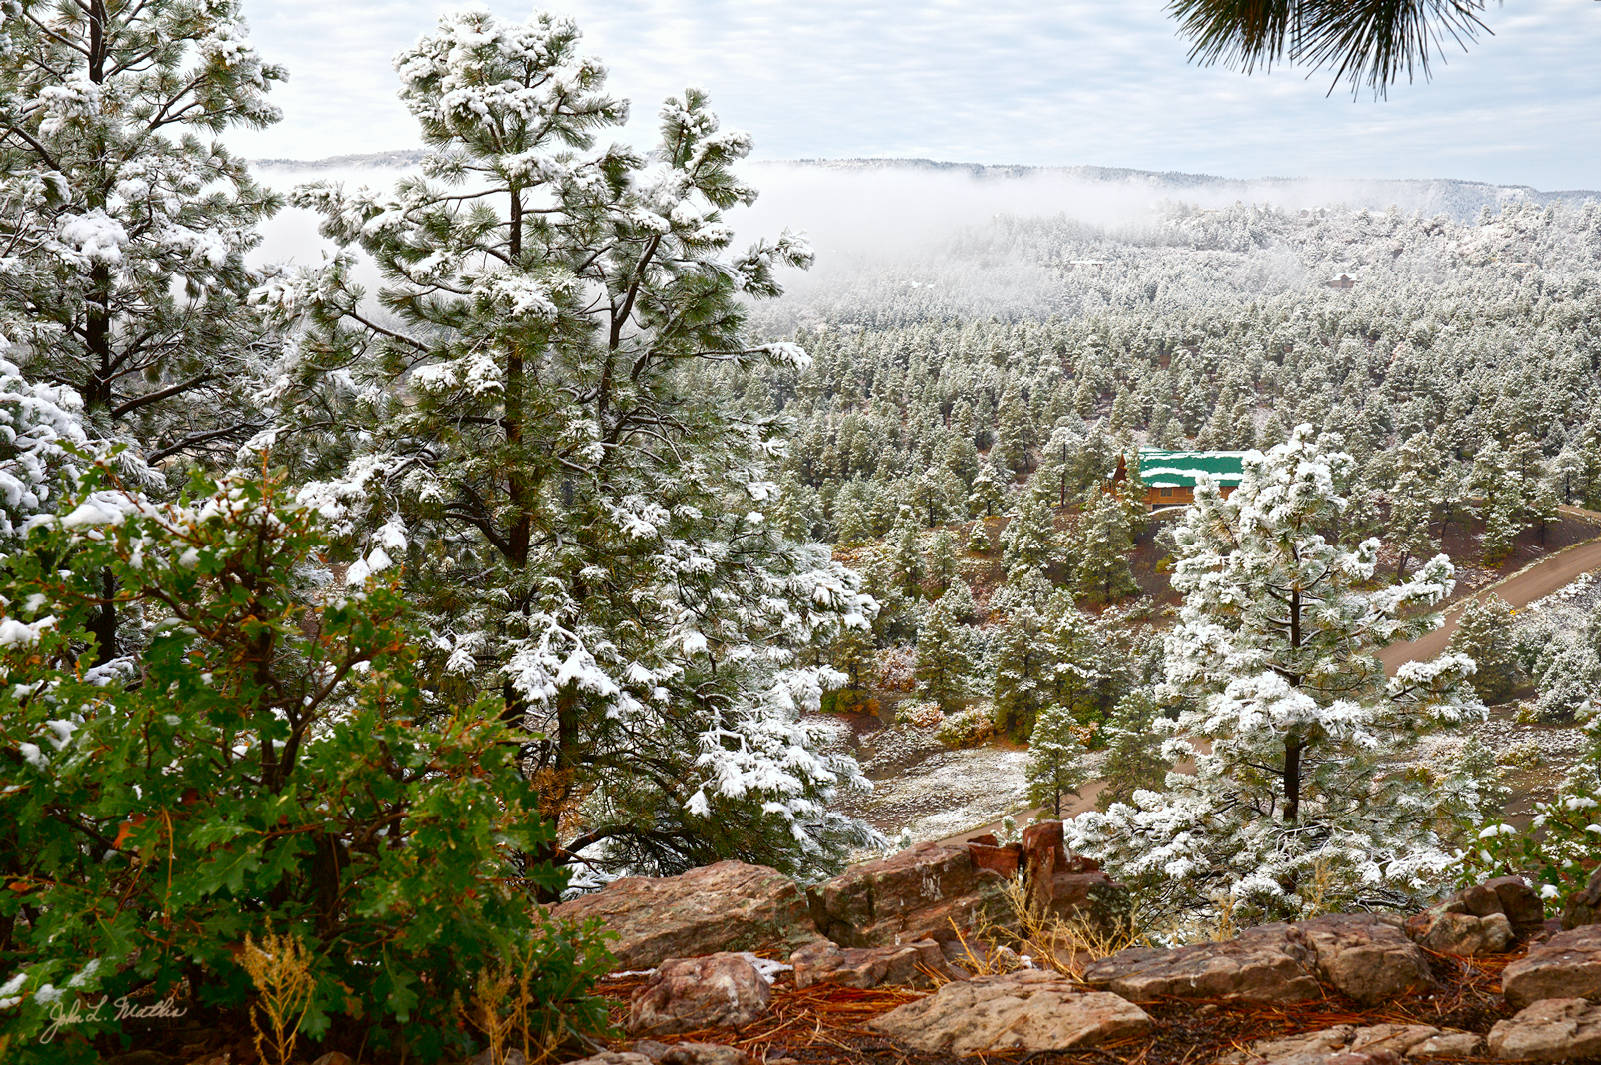 First snowfall of 2011-12 season on October 7-8, 2011 in Pagosa Springs, CO.